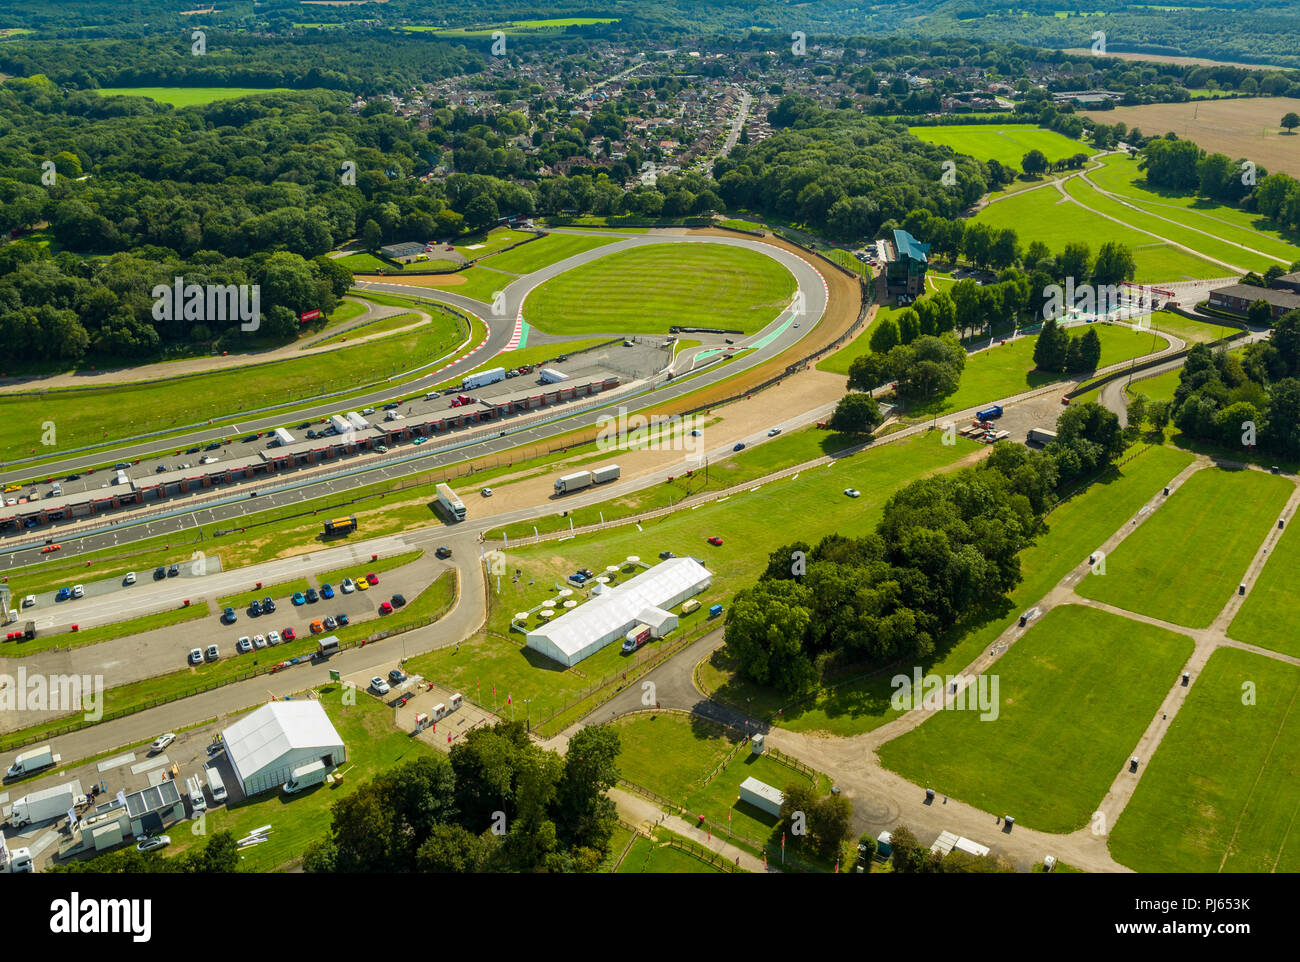 Aerial view of Brands Hatch race circuit, Kent, UK - Stock Image